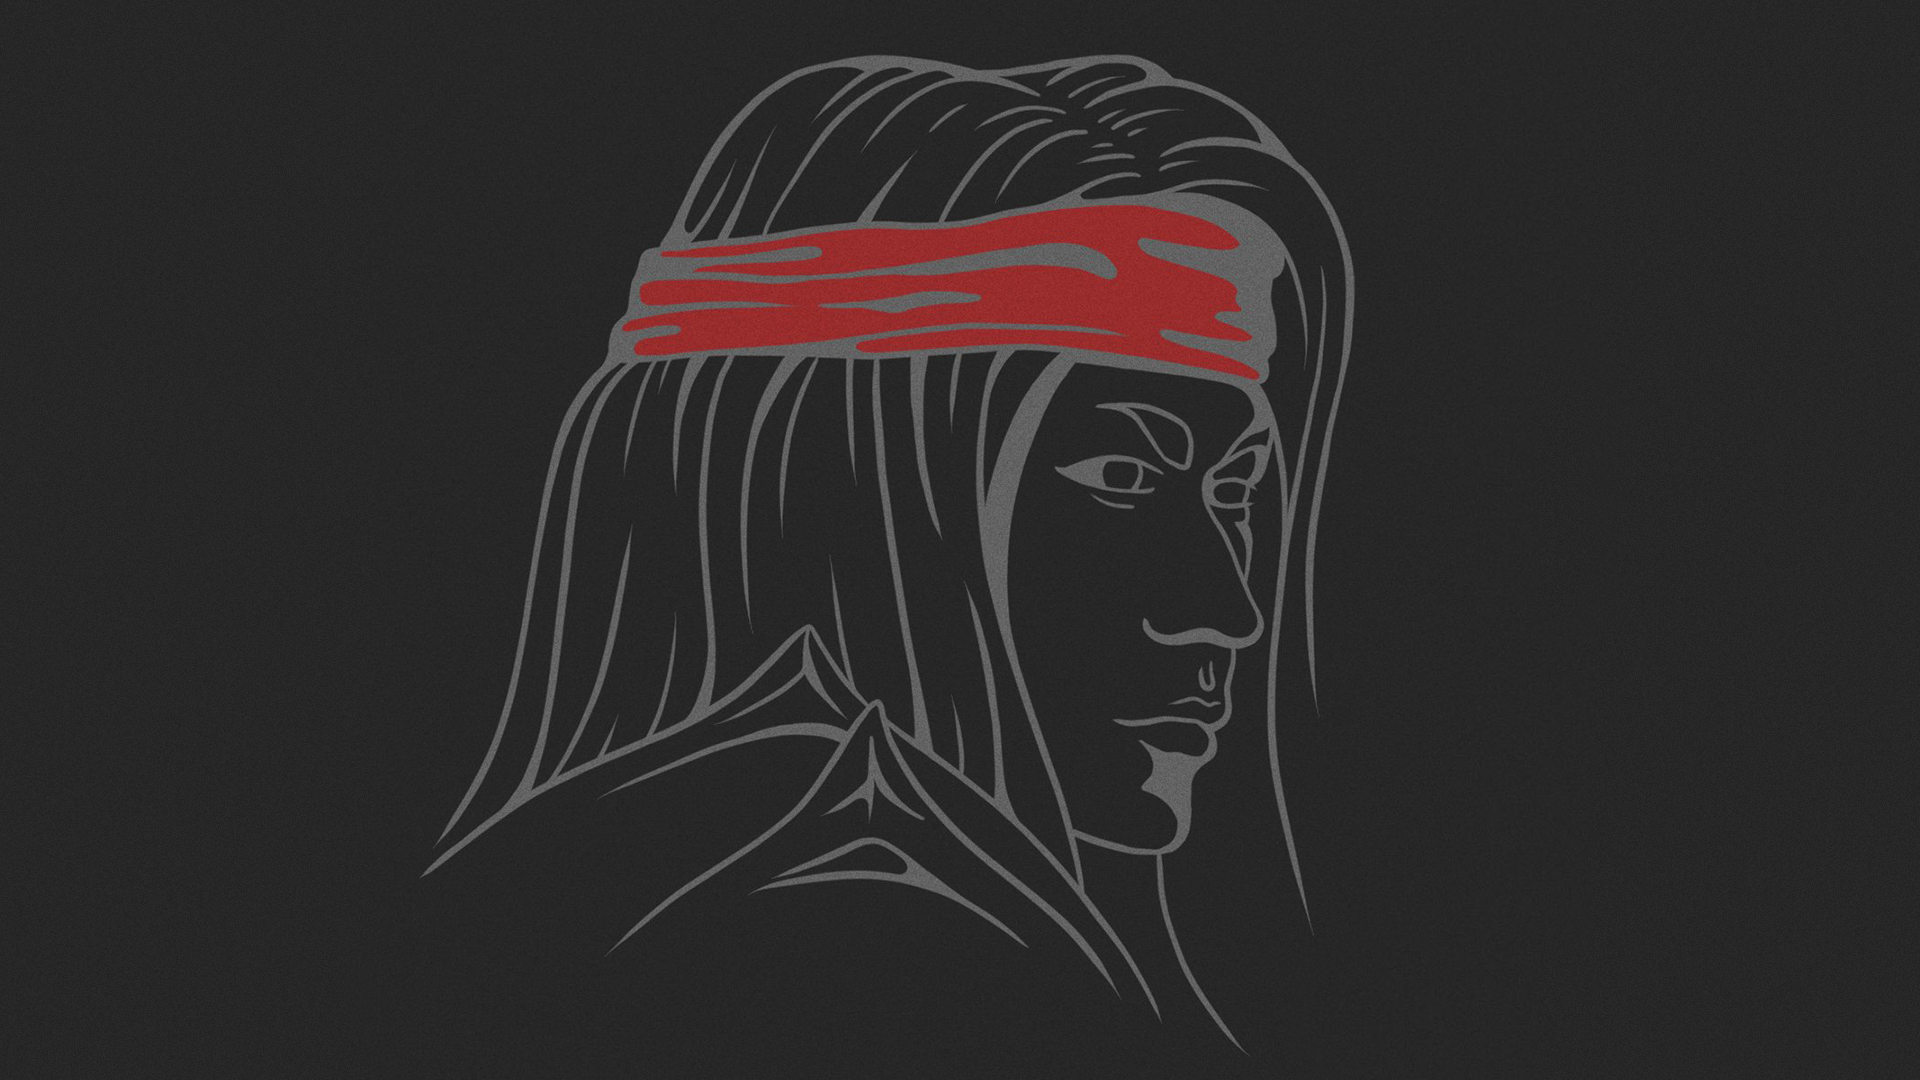 Mortal Kombat background - Liu Kang